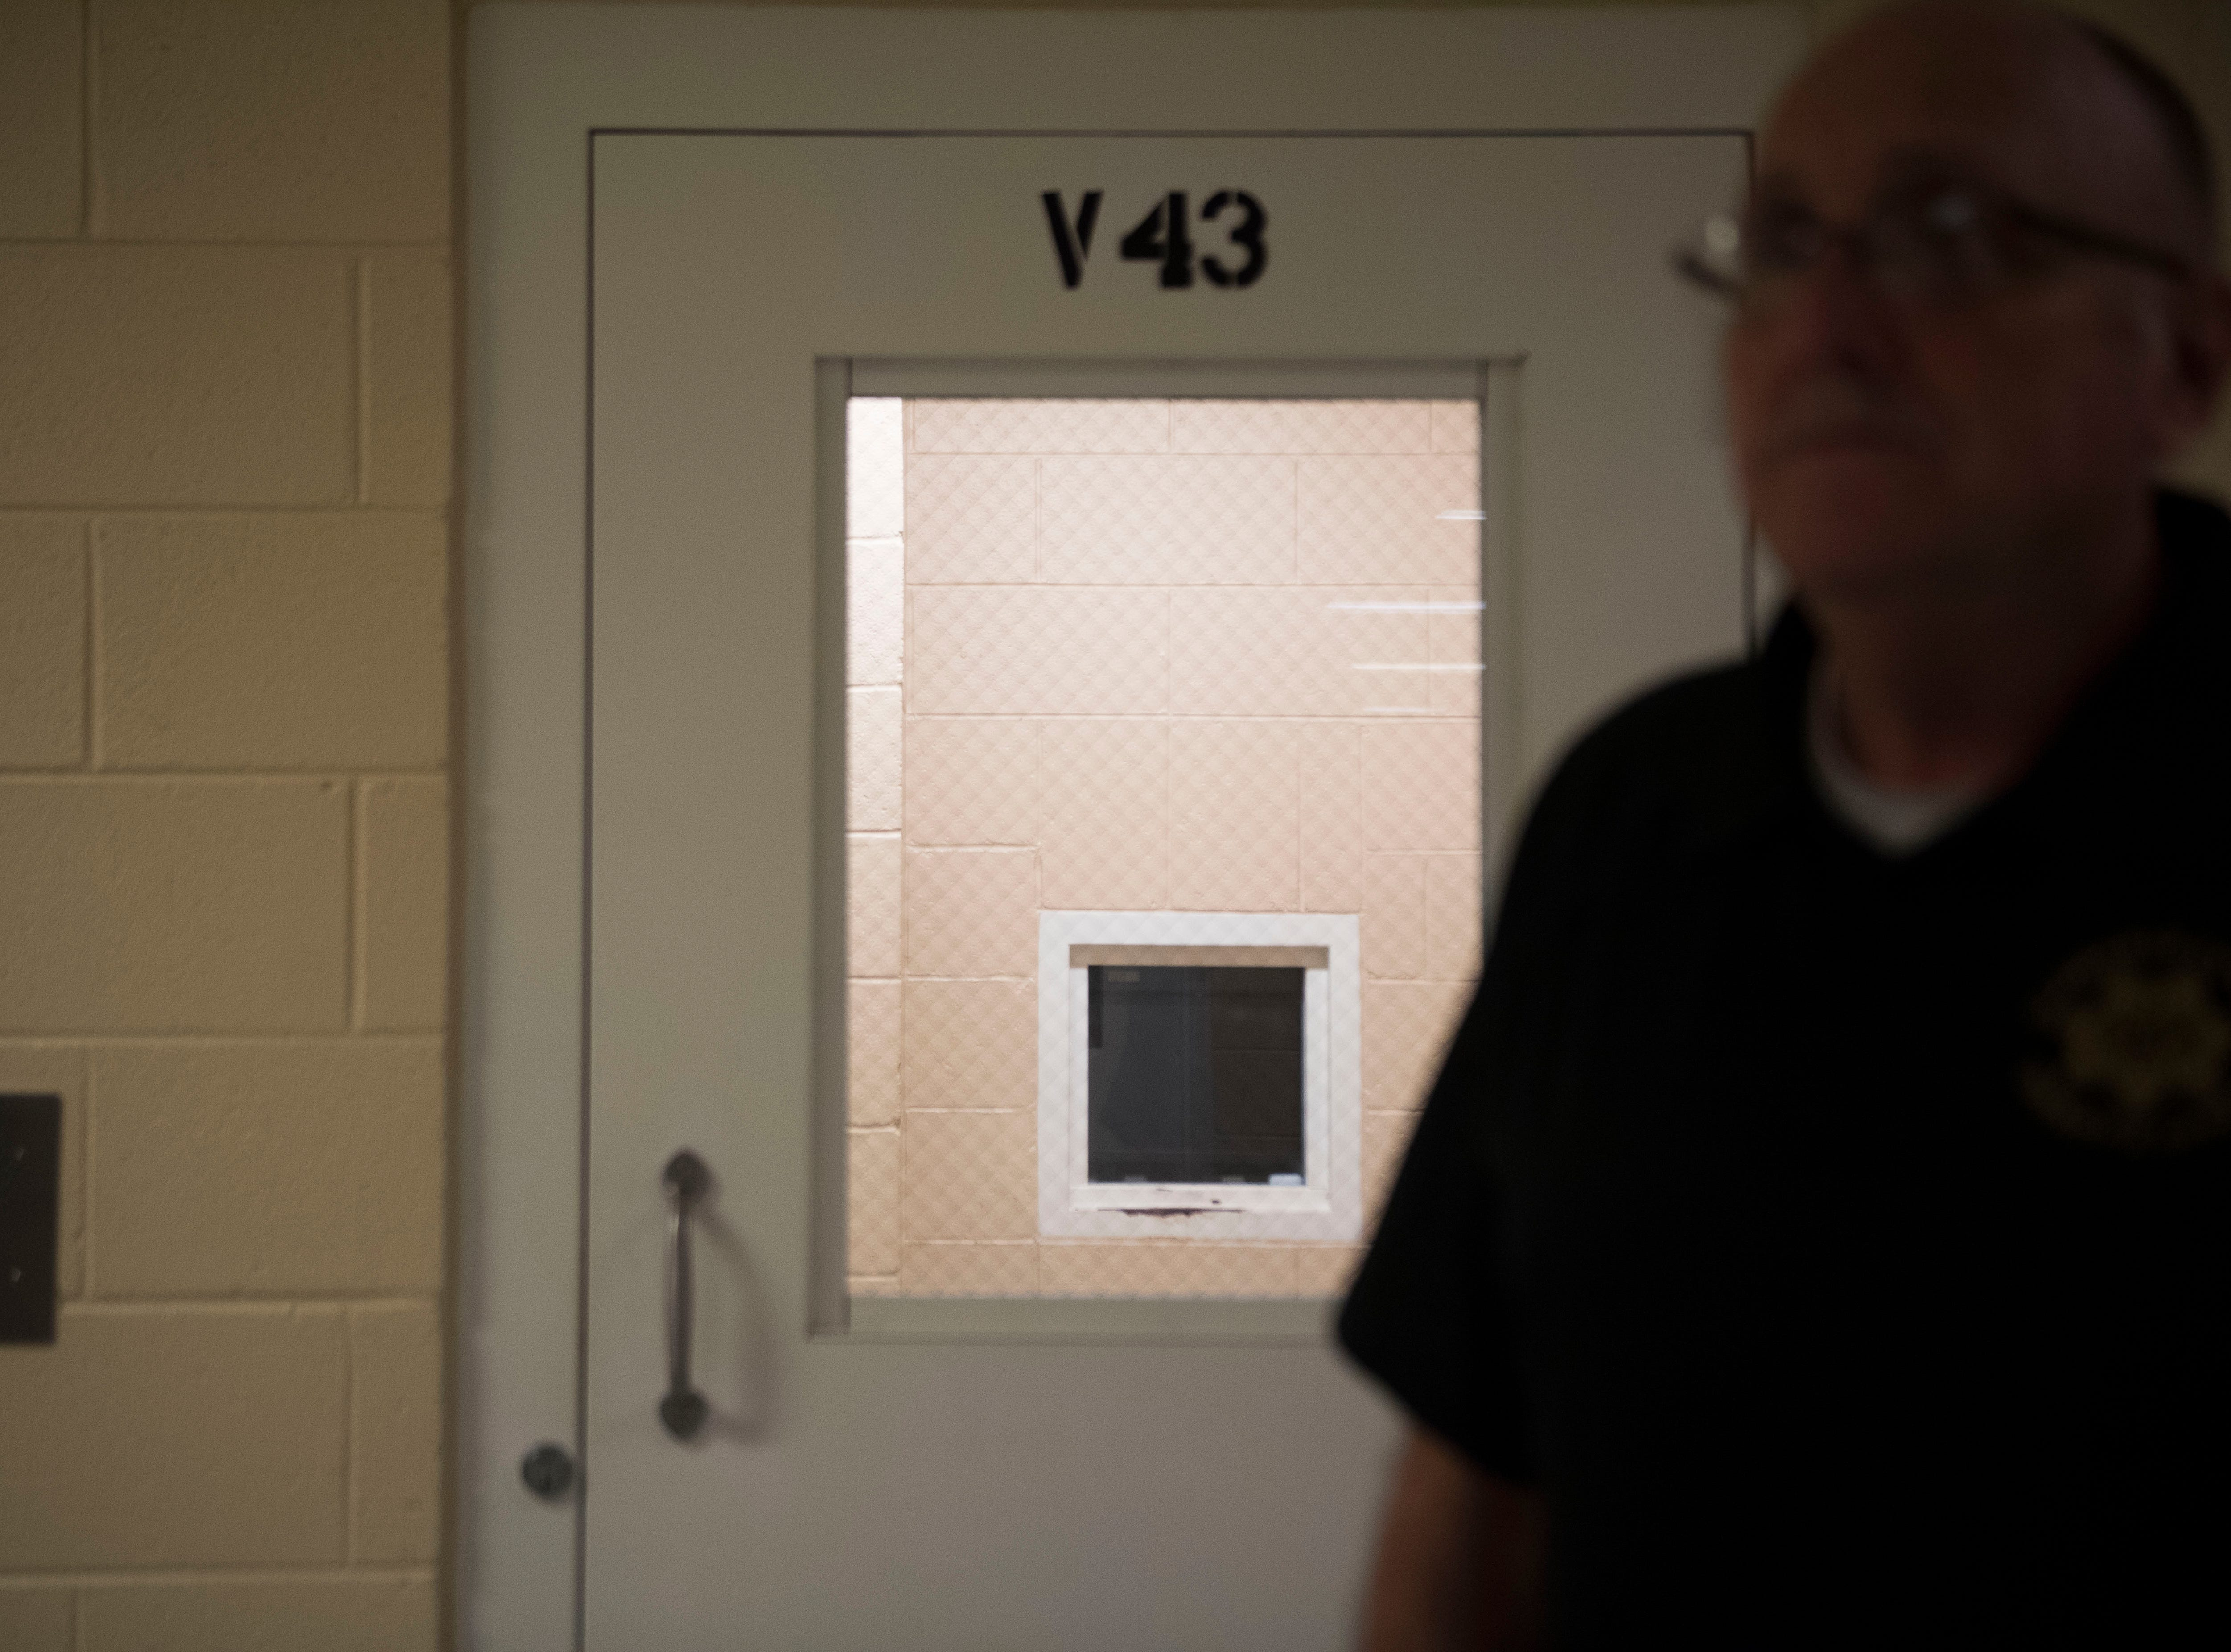 Claiborne County Chief Jail Administrator Steve Ellis stands outside in area for inmate video visitation area is set up for inmates at Claiborne County Jail in Claiborne County, Wednesday, Oct. 24, 2018.